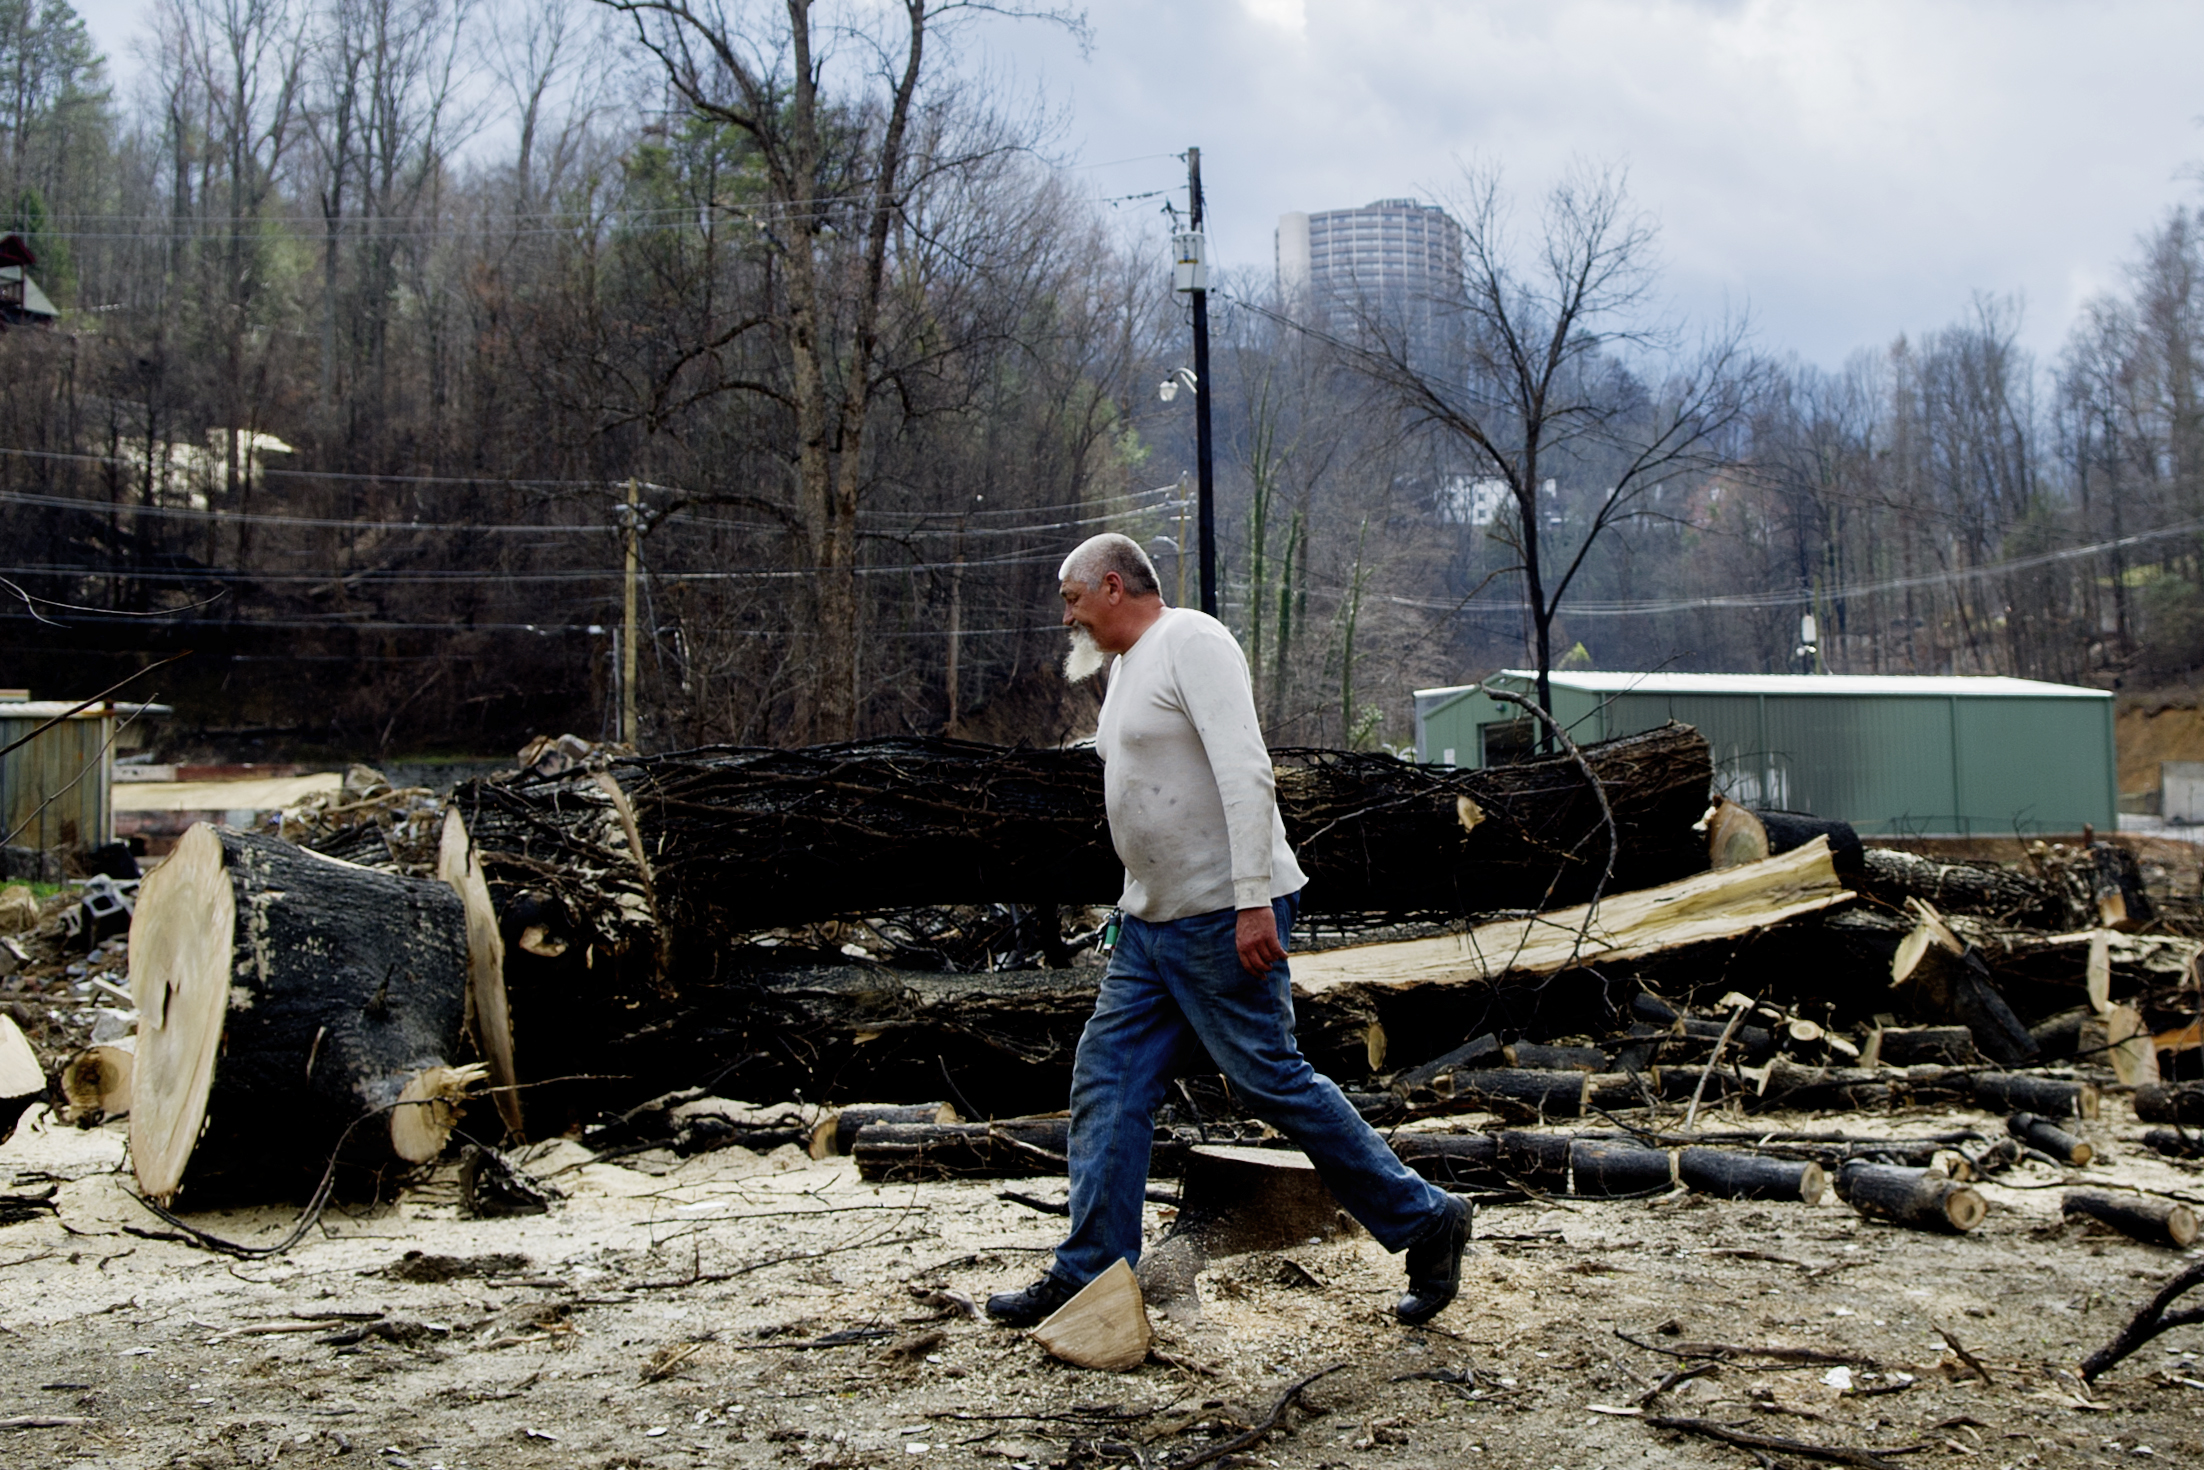 David Dowling of Monkey Man Tree Service works cutting apart a downed tree damaged by the wildfires along Baskin's Creek Road 90 days after the Gatlinburg wildfires in Gatlinburg, Tennessee.